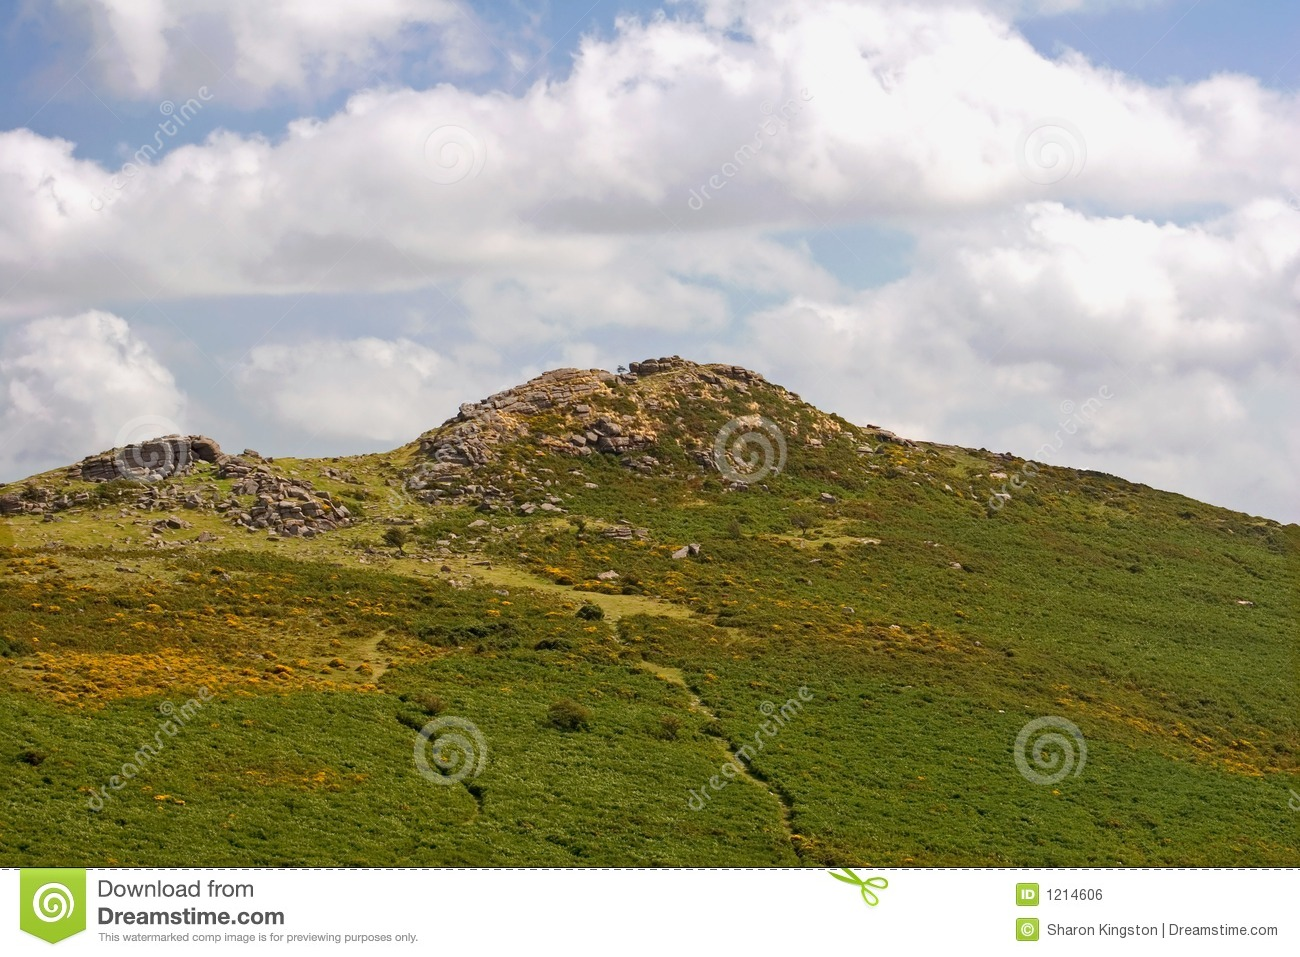 Dartmoor National Park Royalty Free Stock Image - Image: 1214606: dreamstime.com/royalty-free-stock-image-dartmoor-national-park...